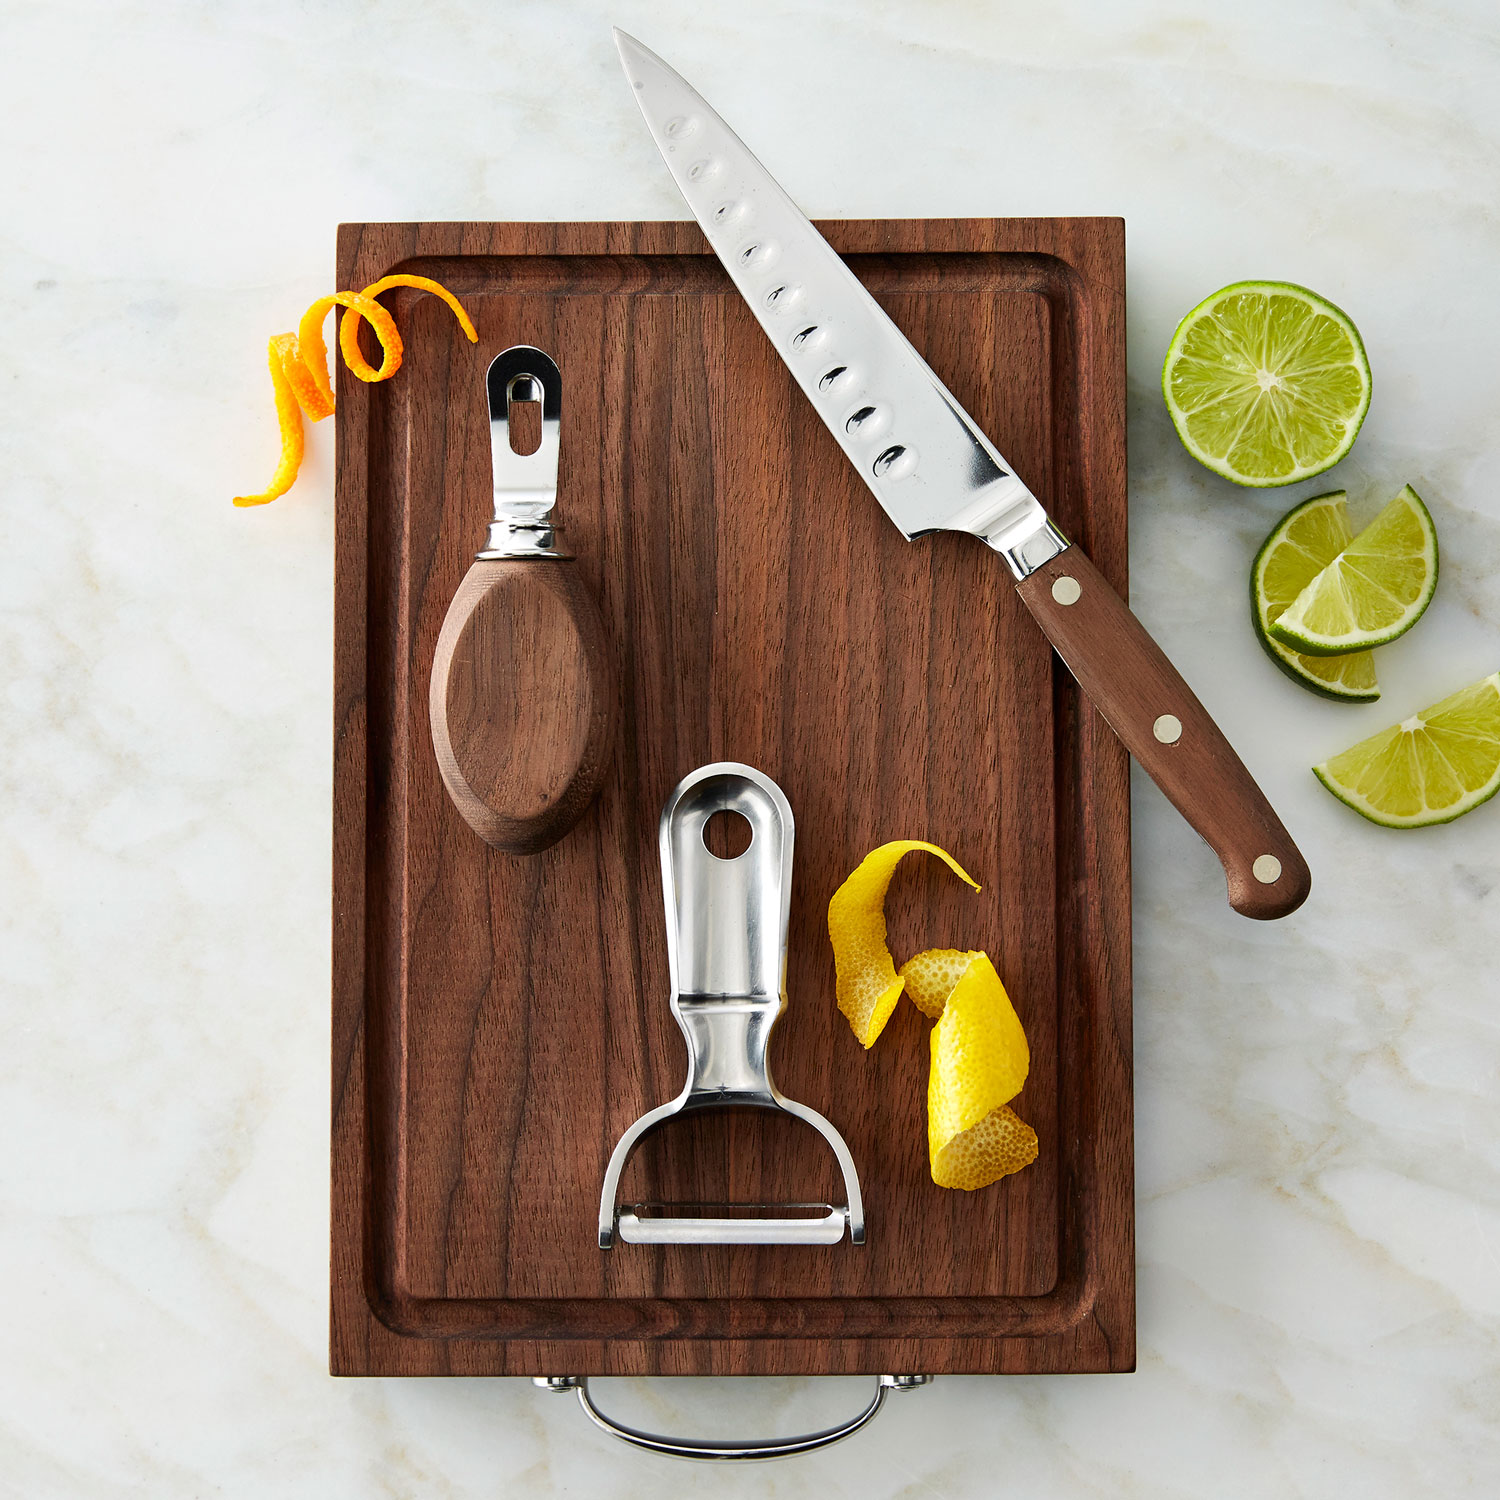 wedding registry product ideas crafthouse by fortessa bar tool set williams sonoma